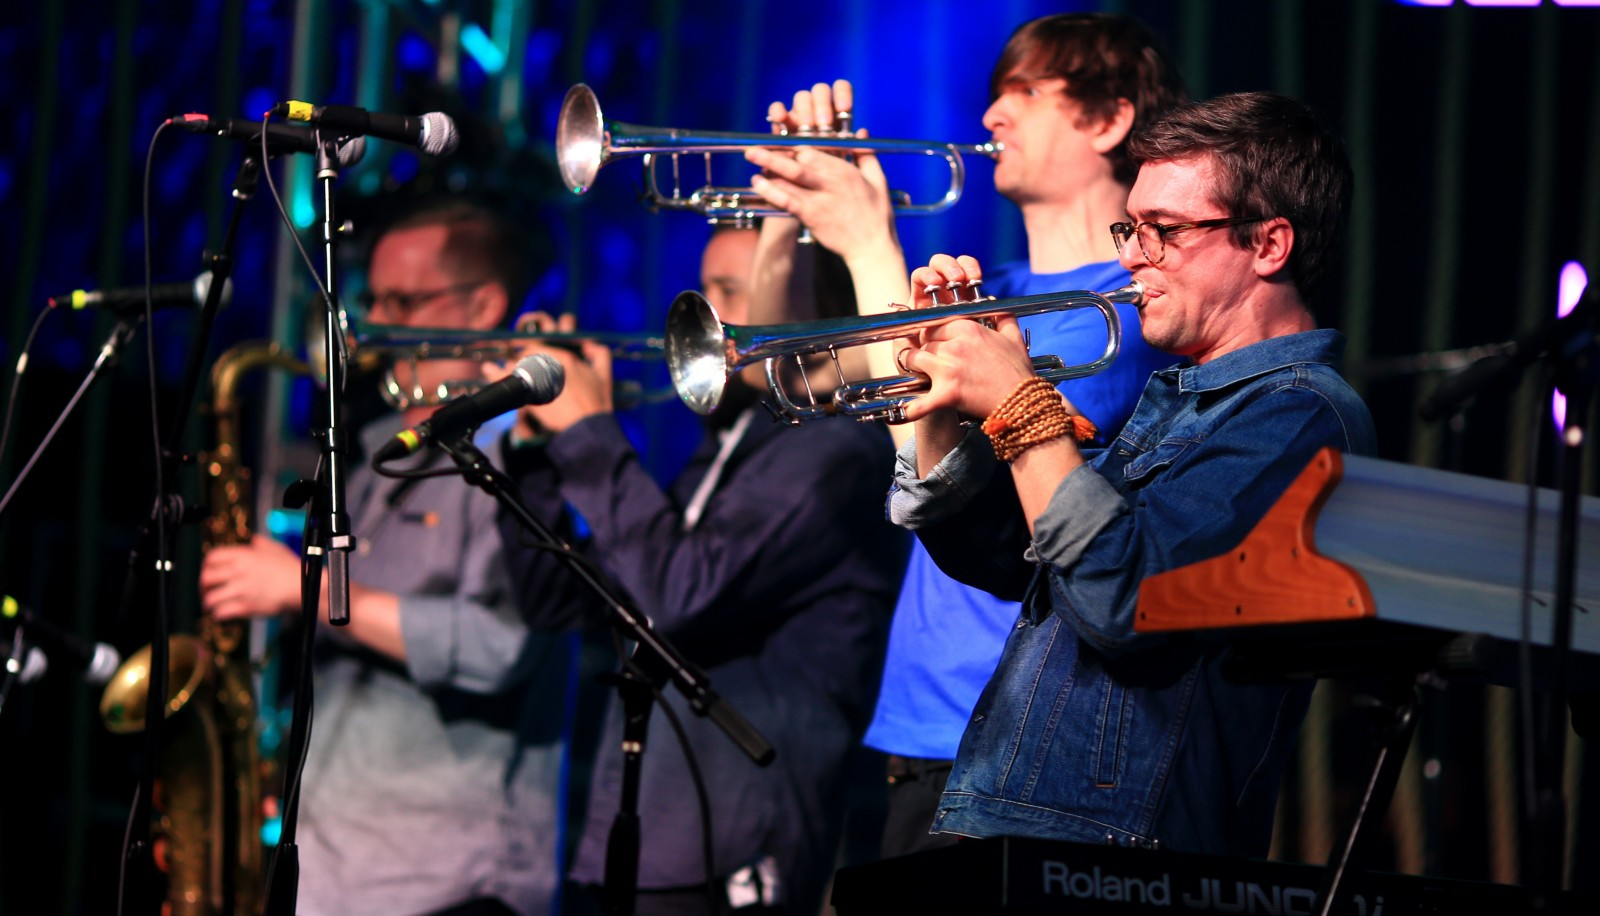 Snarky Puppy, seen here at SXSW, played an energetic sold-out show at Town Ballroom. (Getty Images file photo)